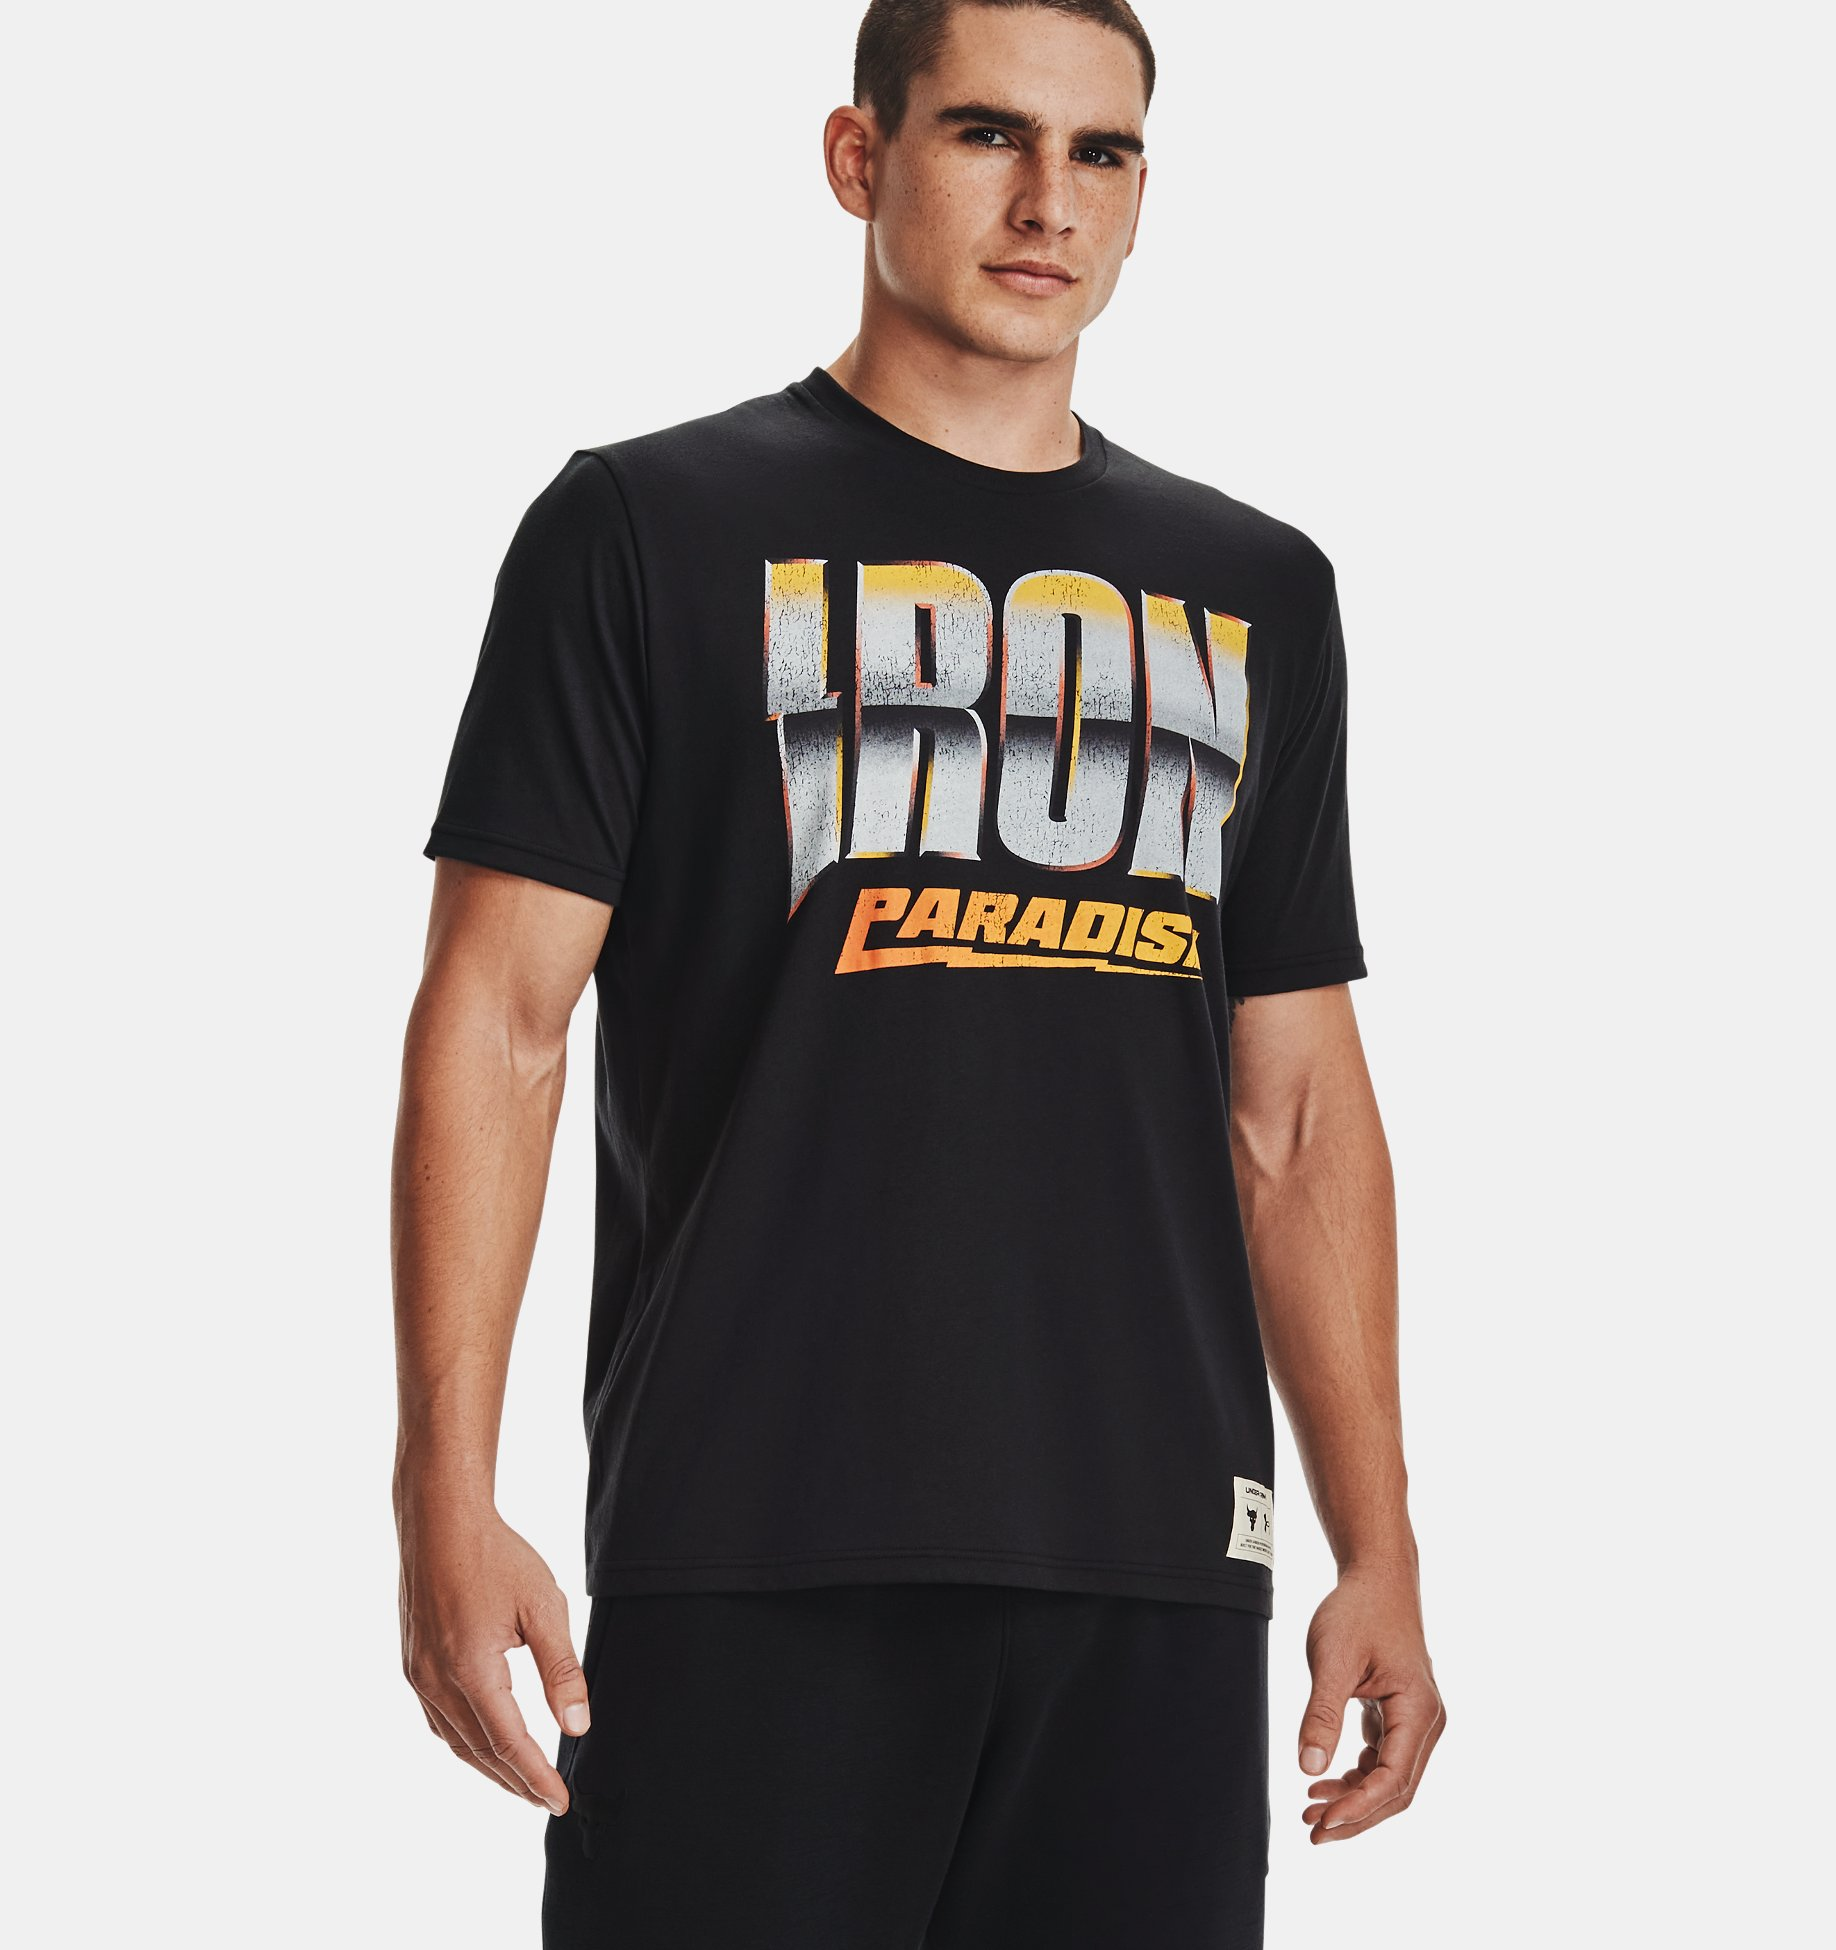 Underarmour Mens Project Rock Dare to Fail Short Sleeve